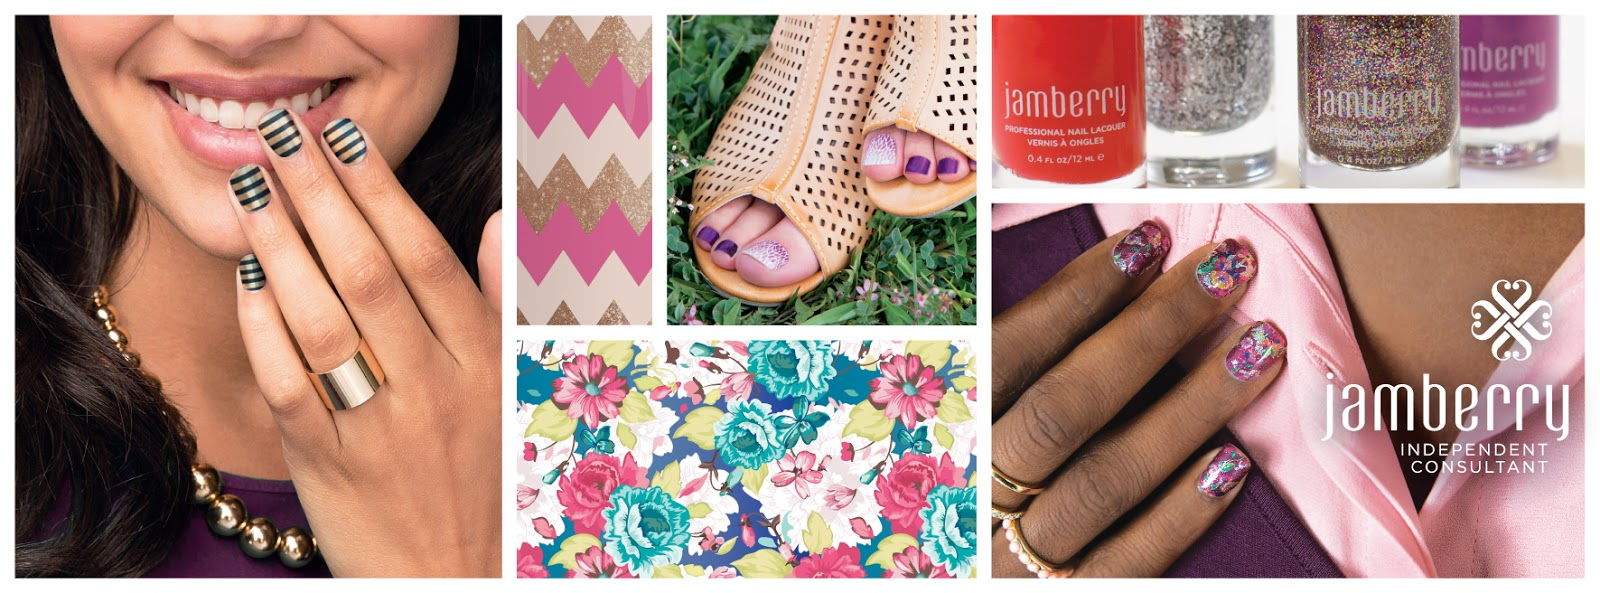 Actually Amy: Jamberry